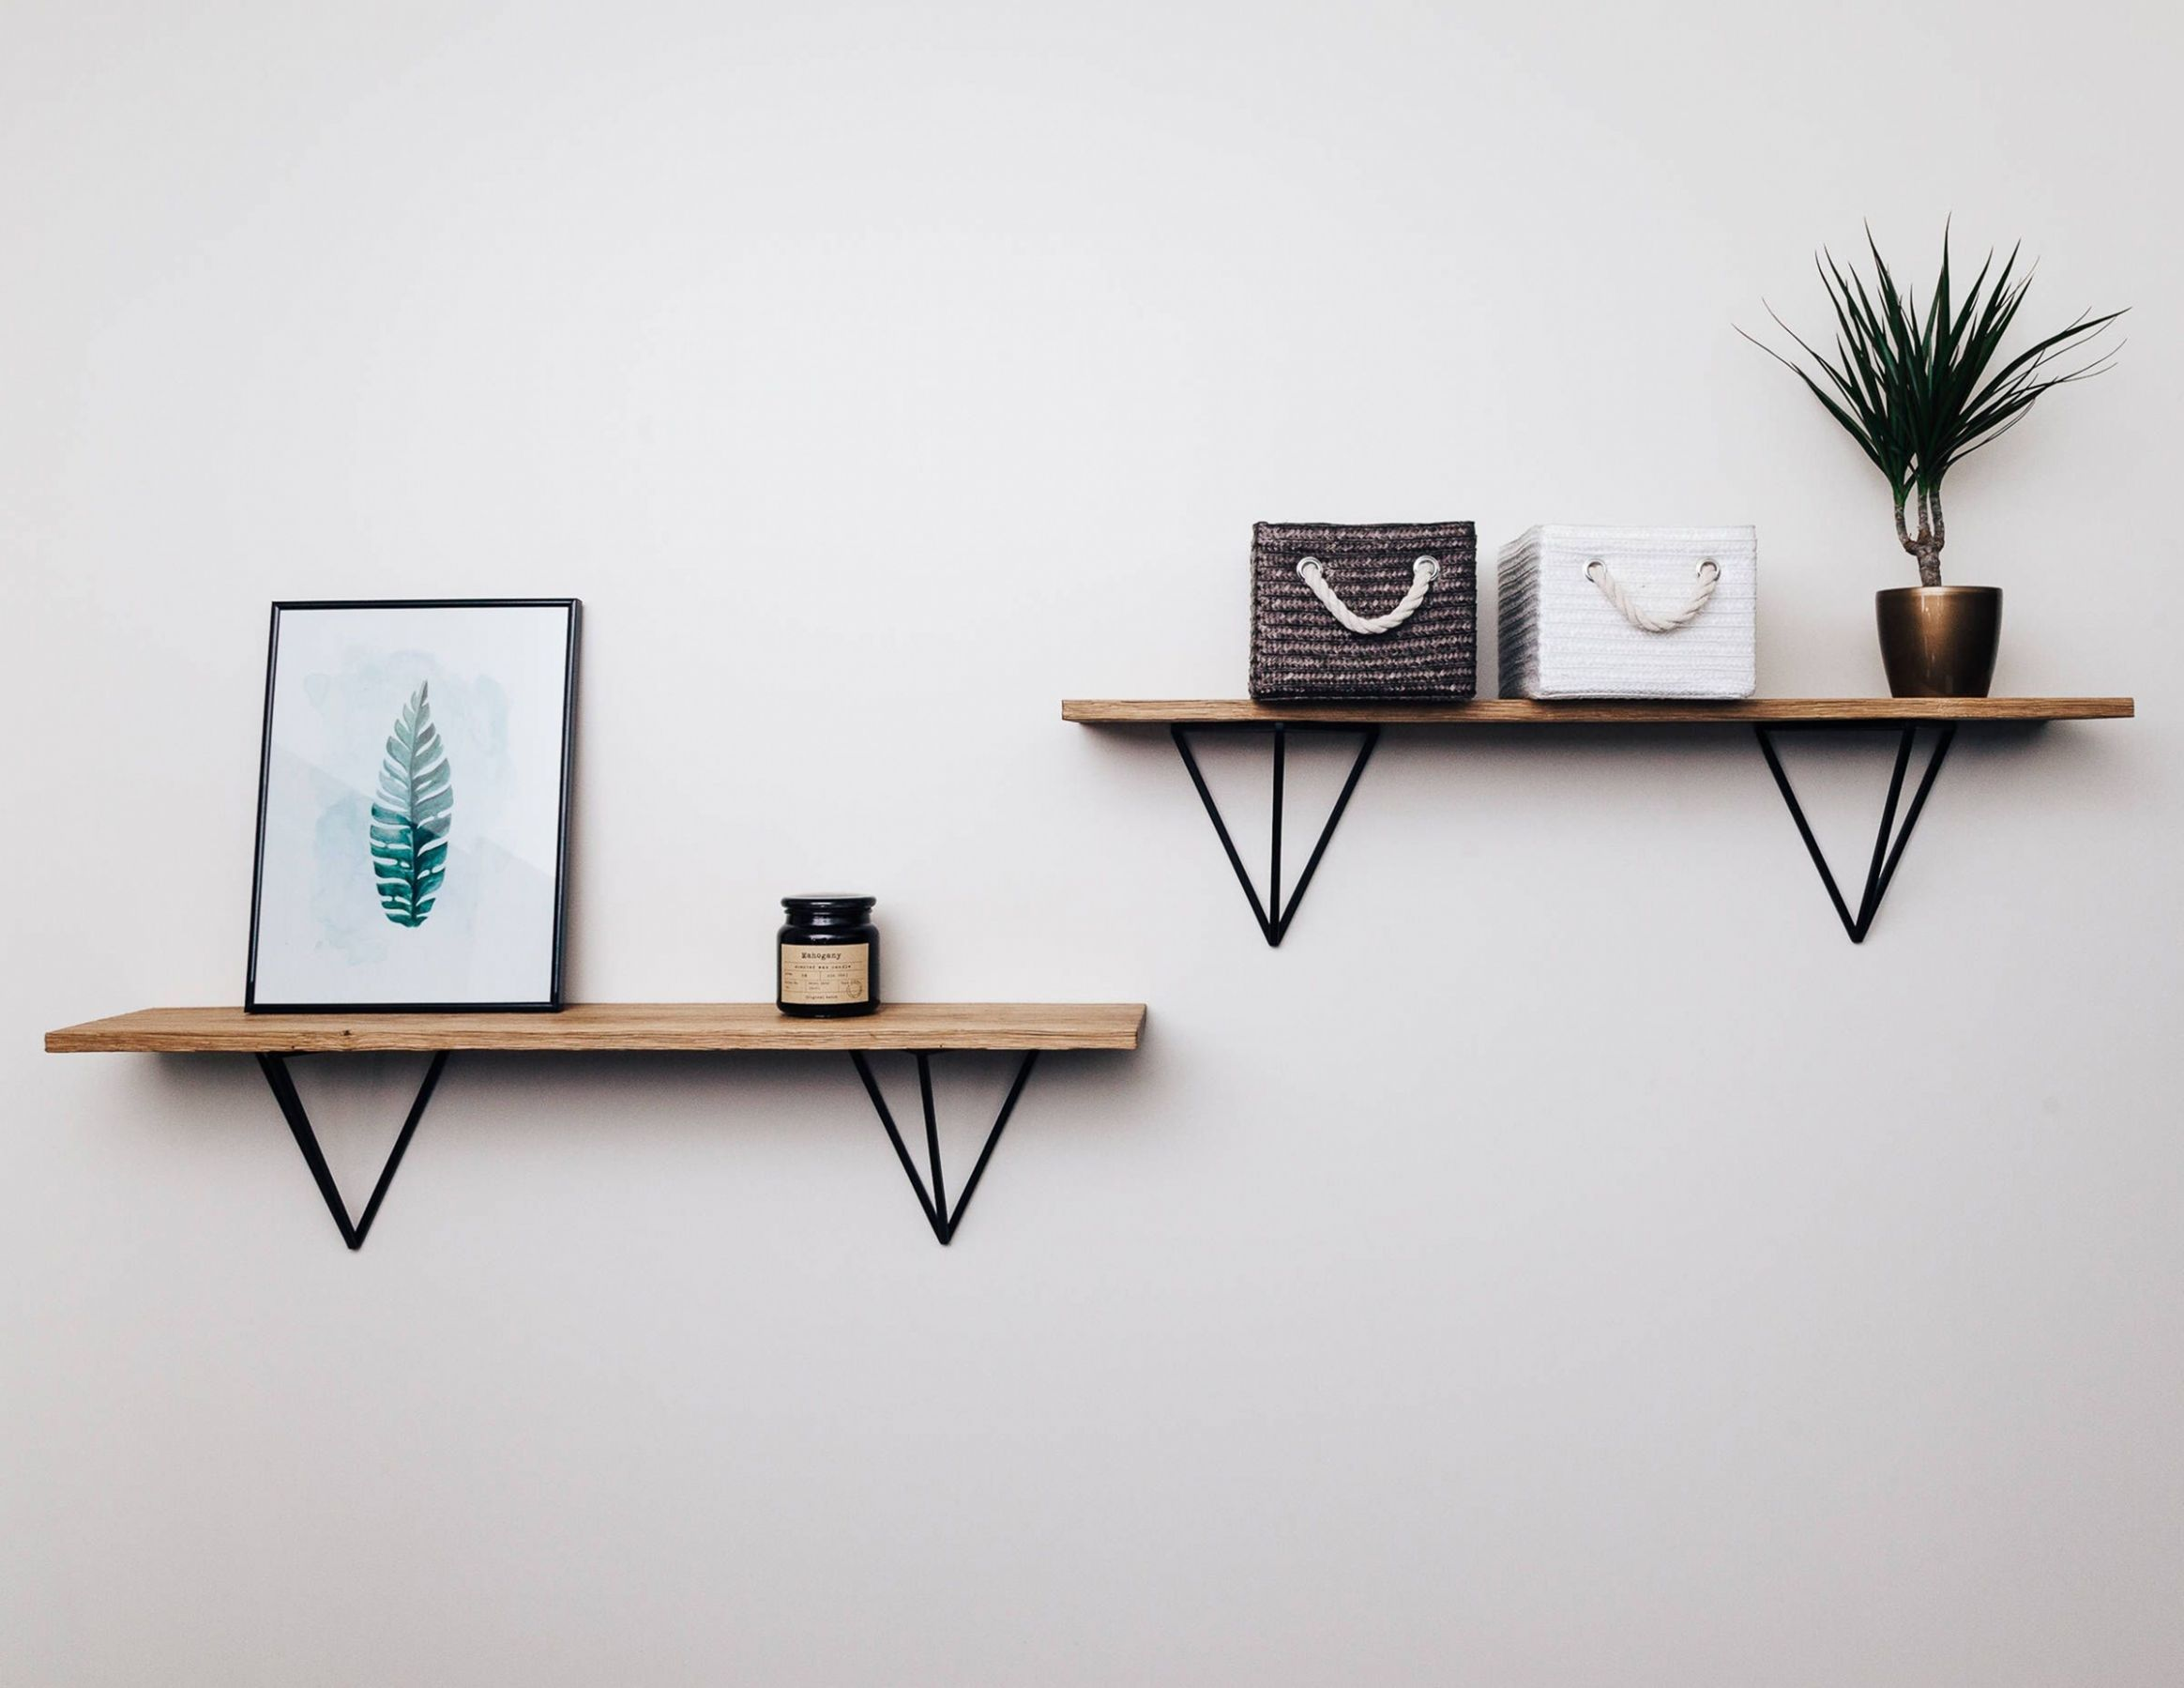 15 Cheap Diy Shelf Design Ideas To Increase The Beauty Of Your